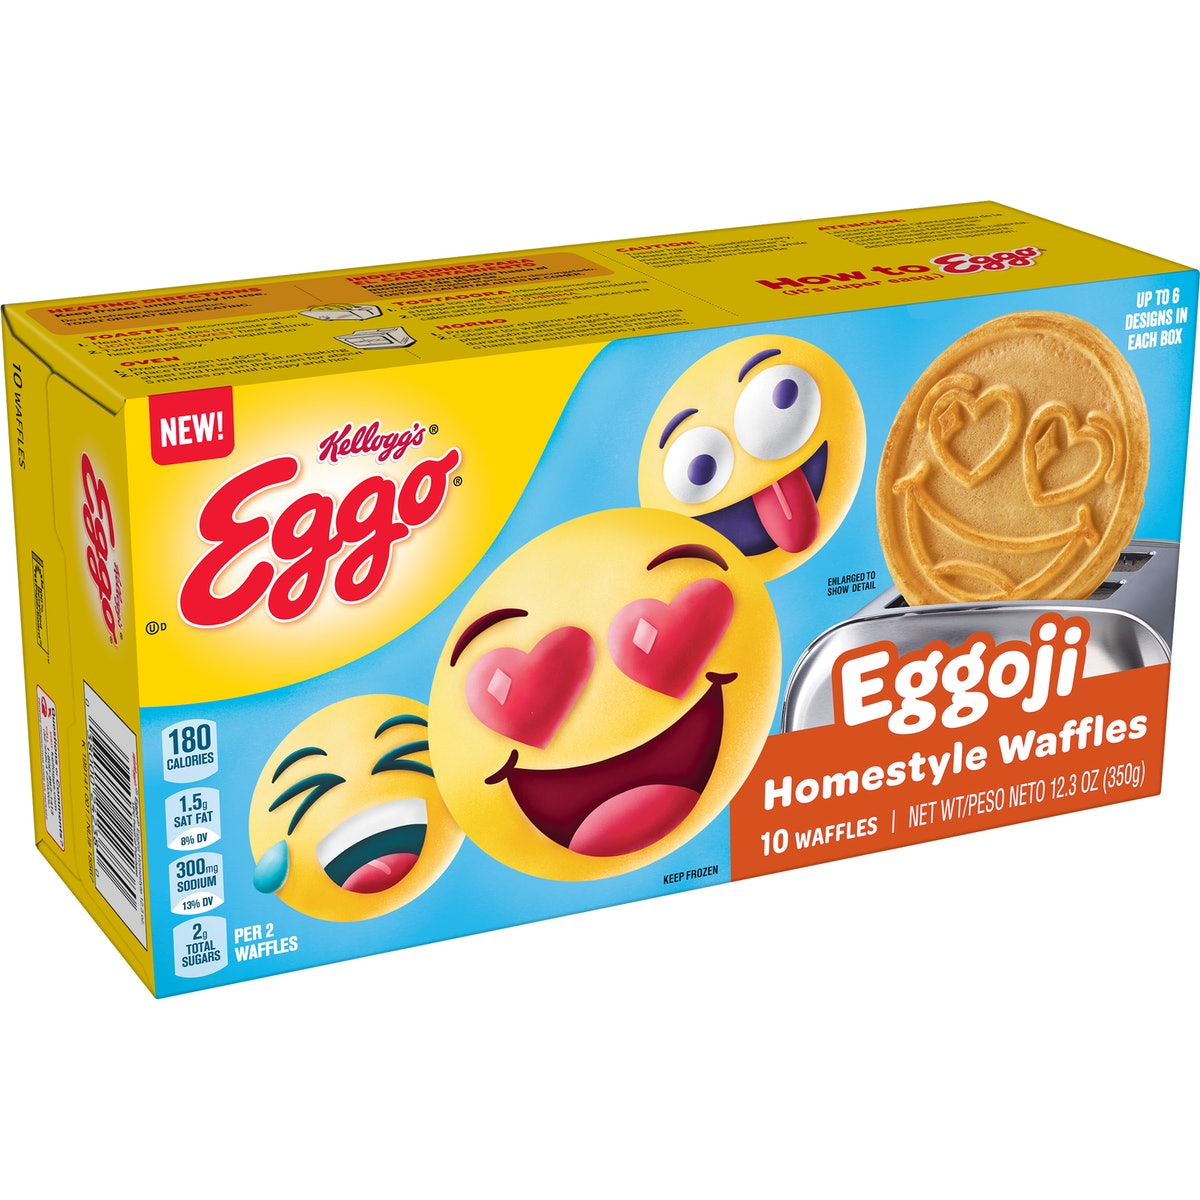 Here's where to buy Eggo's new Eggoji Waffles to give your breakfast a real mood.